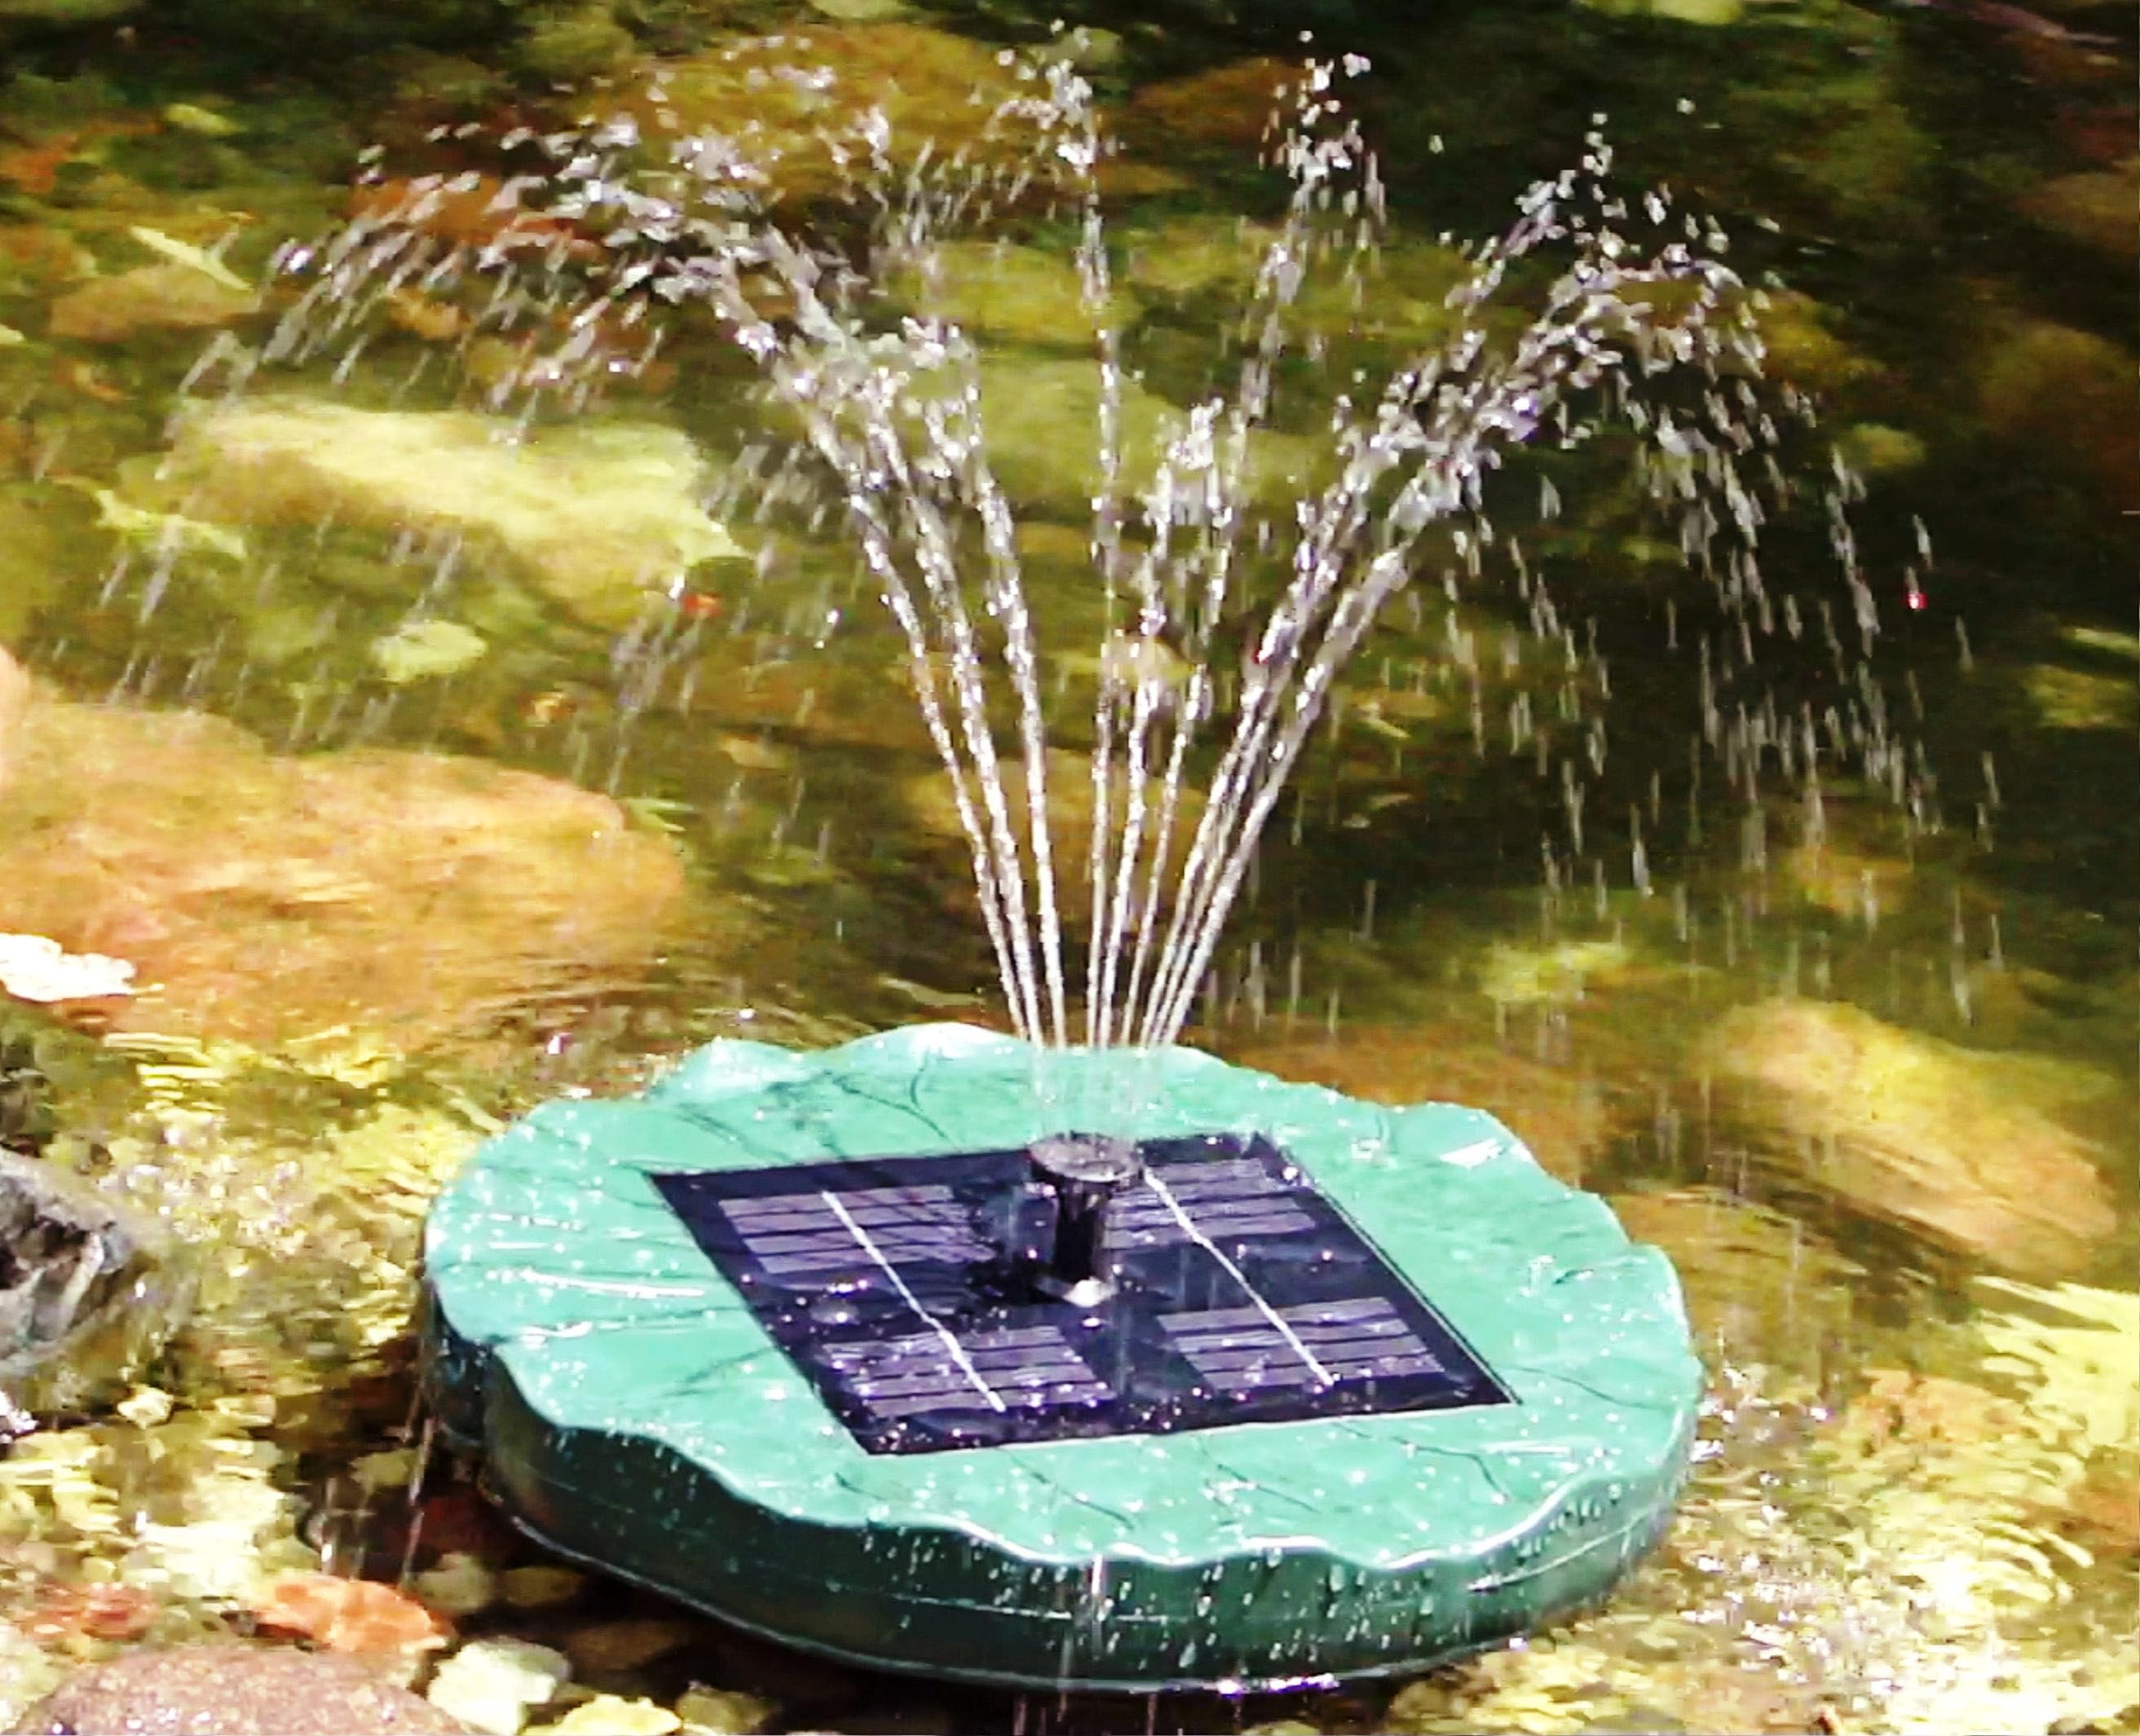 Solar powered pond fountain fountain design ideas for Pond features